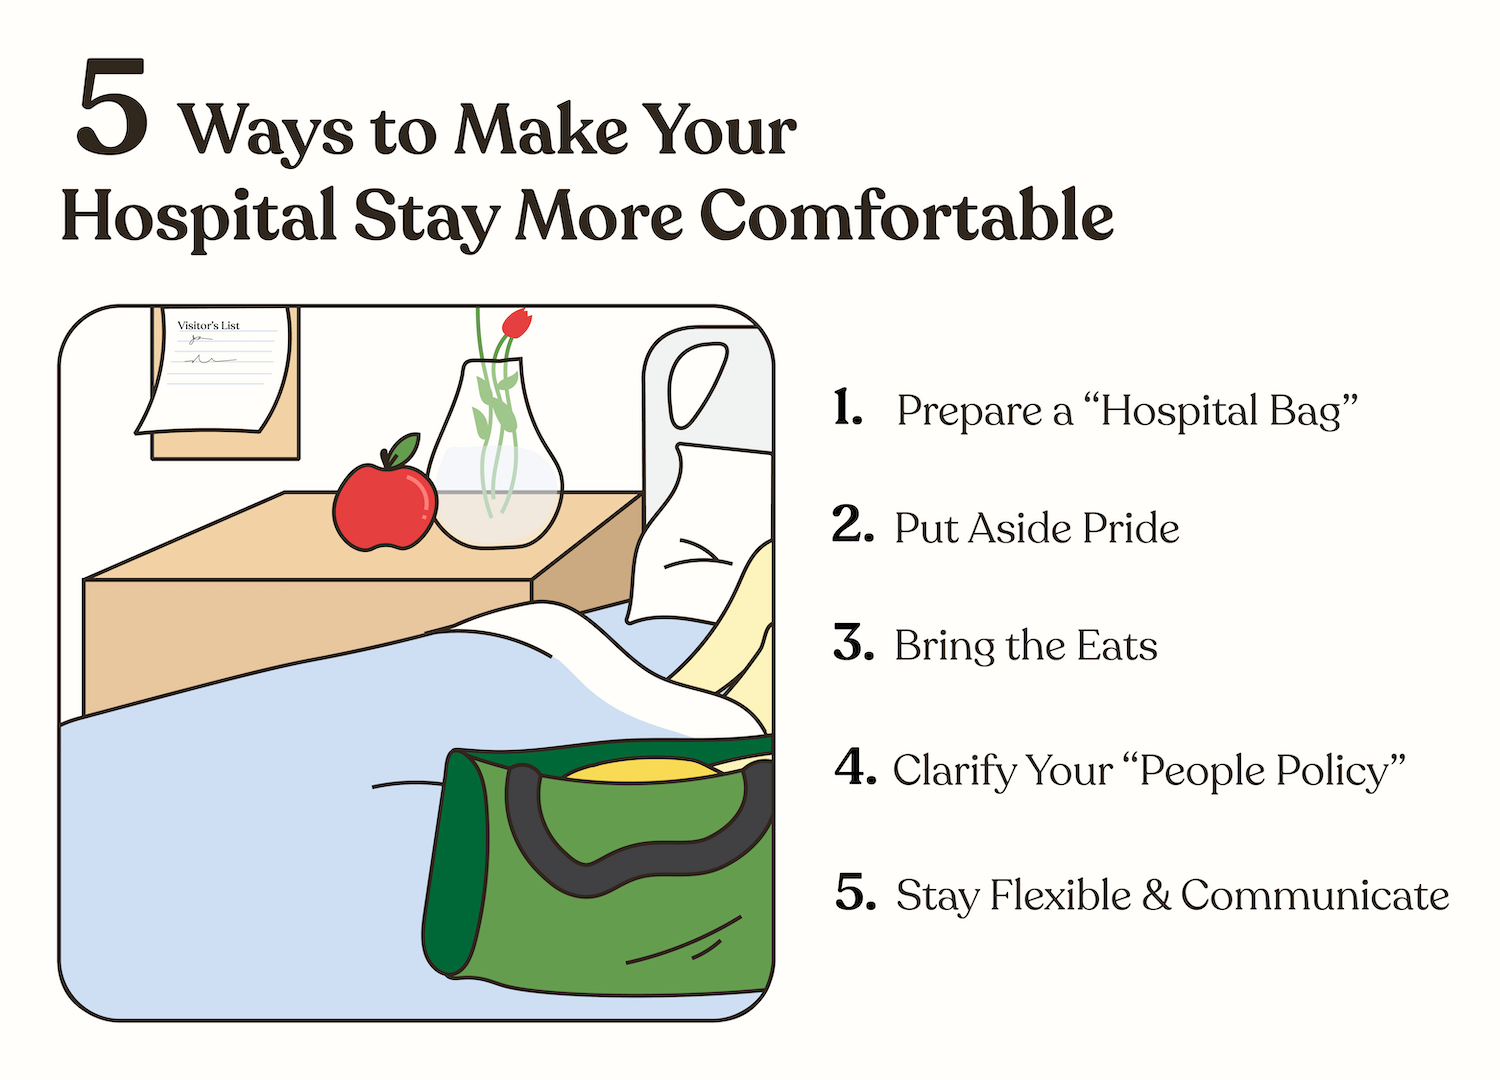 A list of 5 ways to make your hospital stay more comfortable beside a graphic showing a hospital bed, travel bag, and an apple